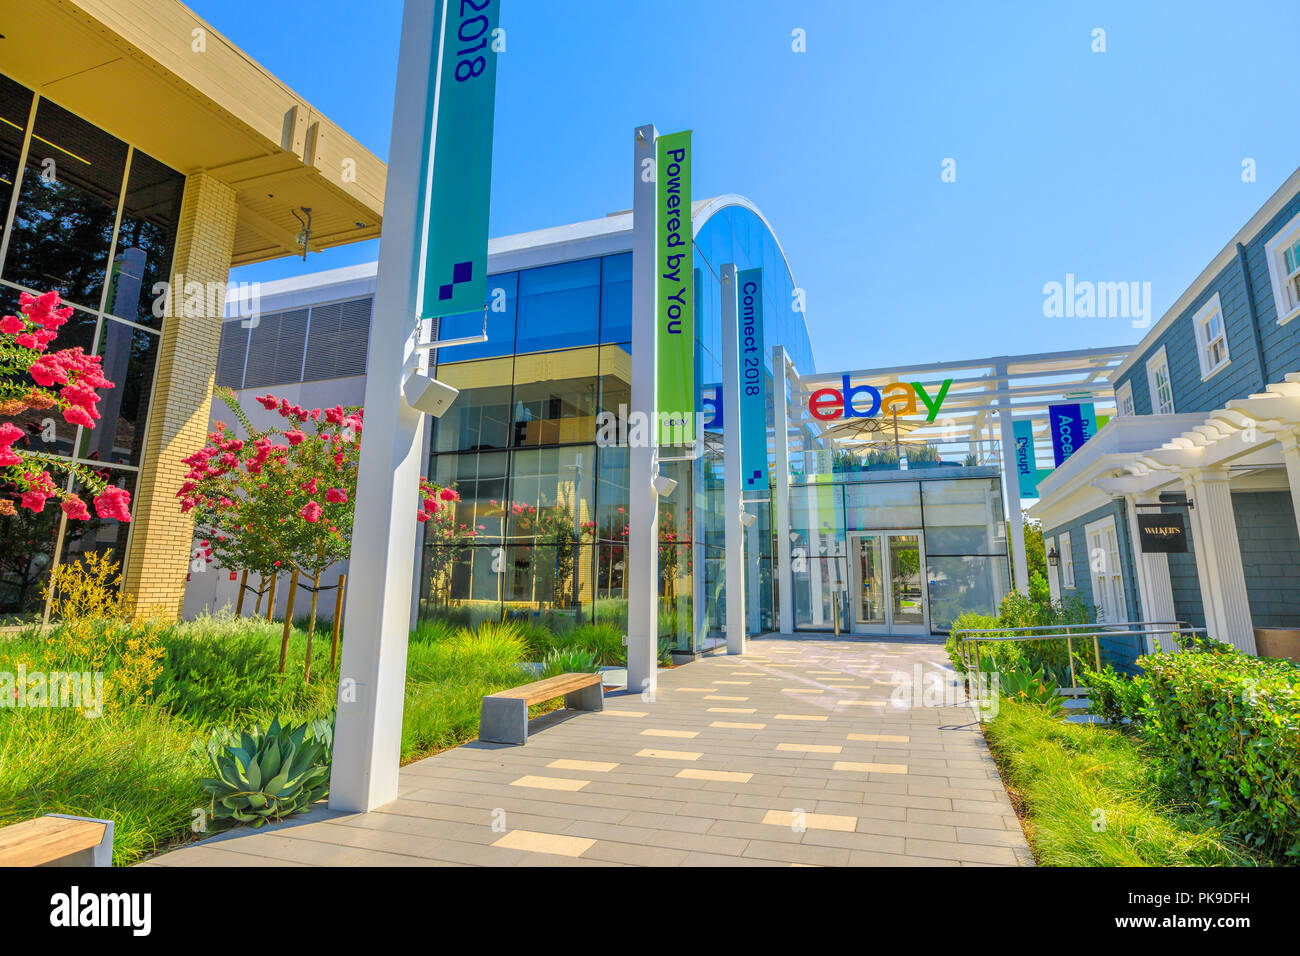 San Jose Ca Usa August 12 2018 Ebaycampus Headquarters In San Jose Of Silicon Valley California Ebay Inc Is The Leader Company In E Commerce With Its Online Marketplace And Virtual Stores